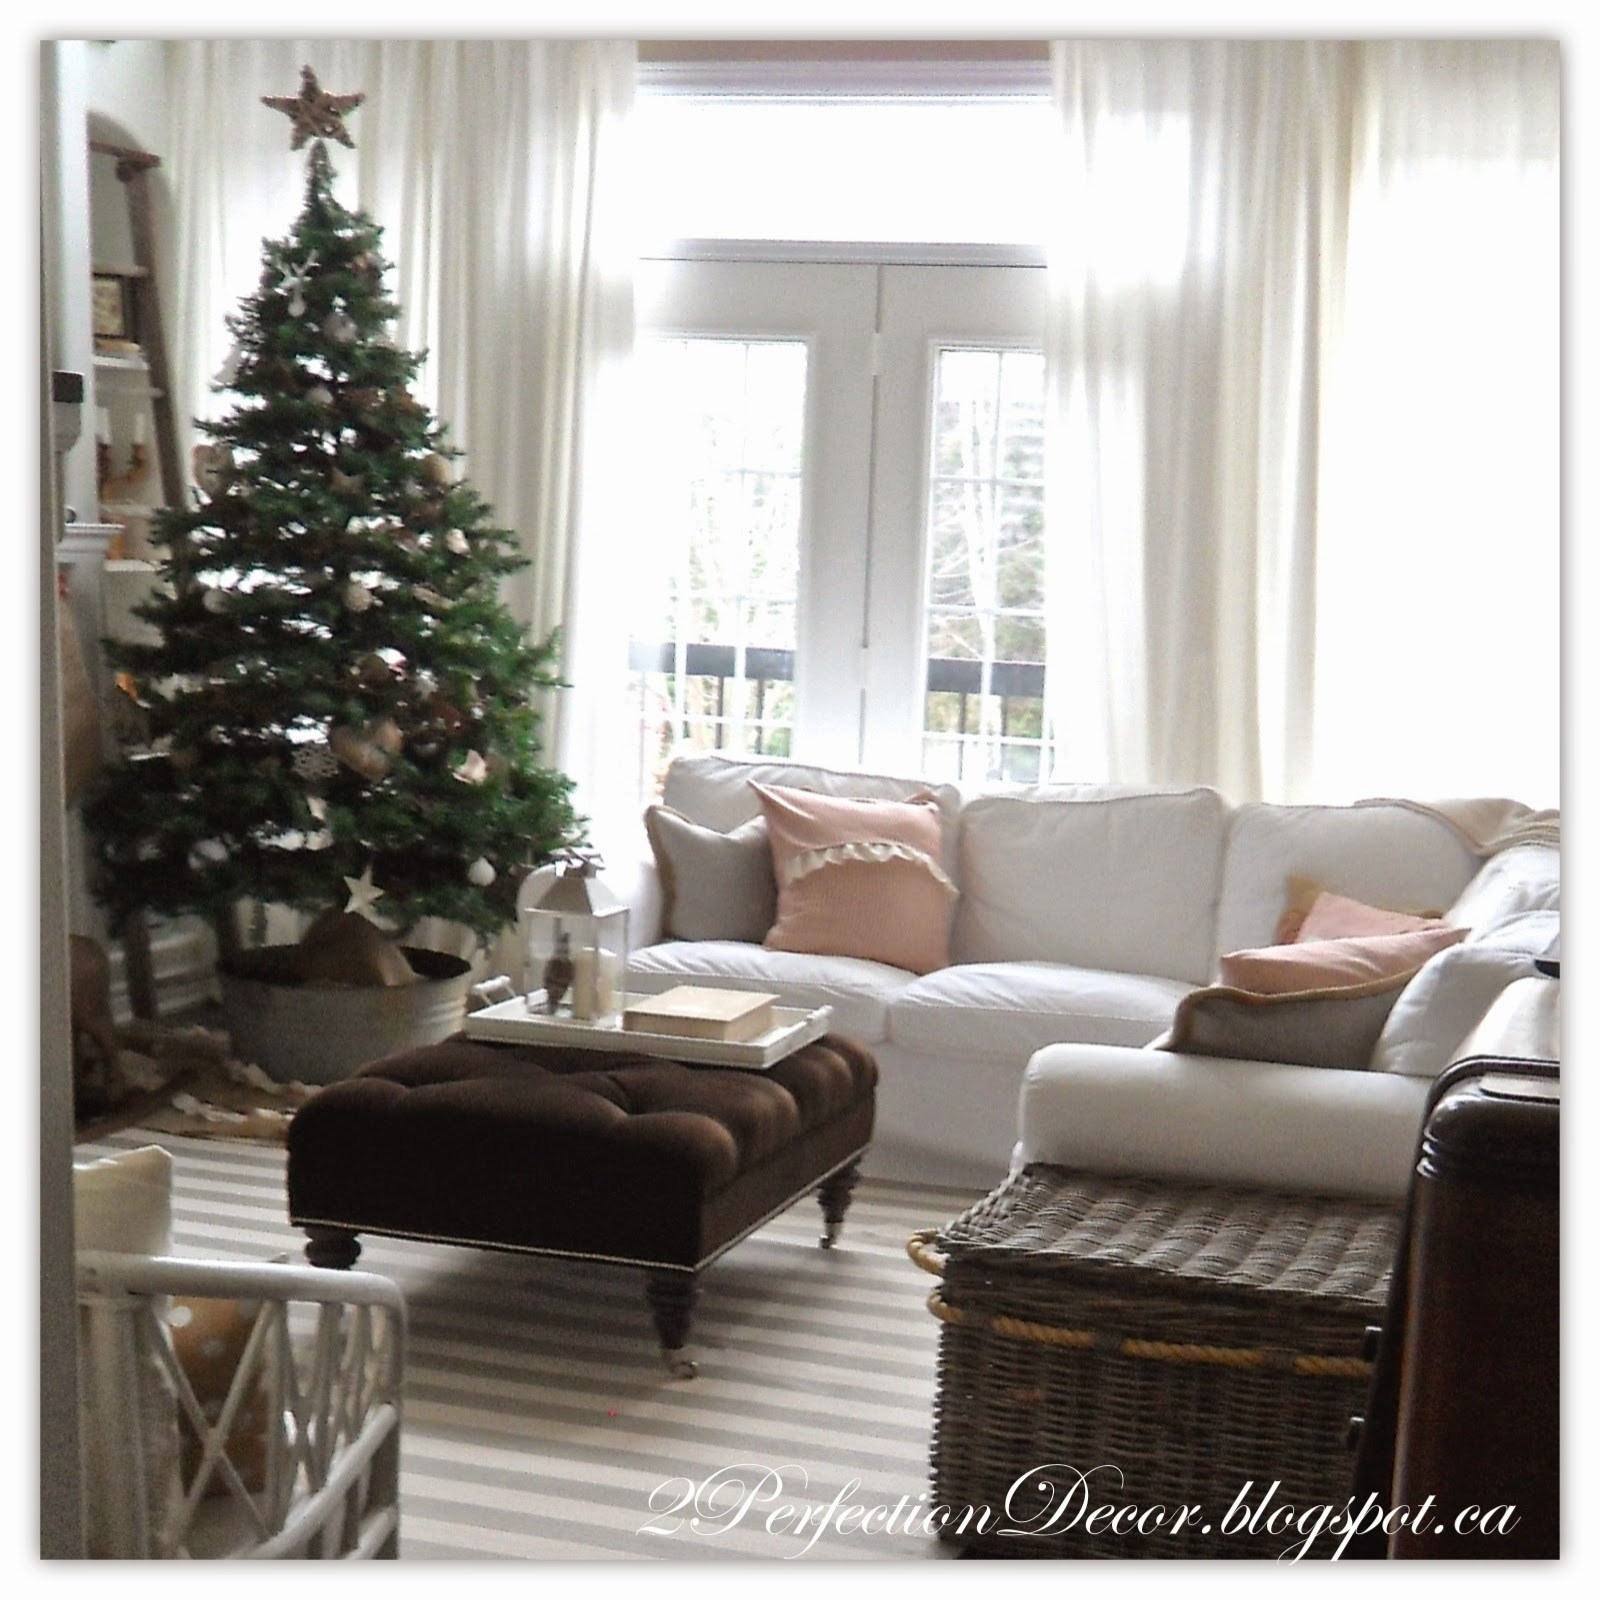 French Pillows Home Decor 2perfection Decor Neutral Christmas Decor In Our Family Room